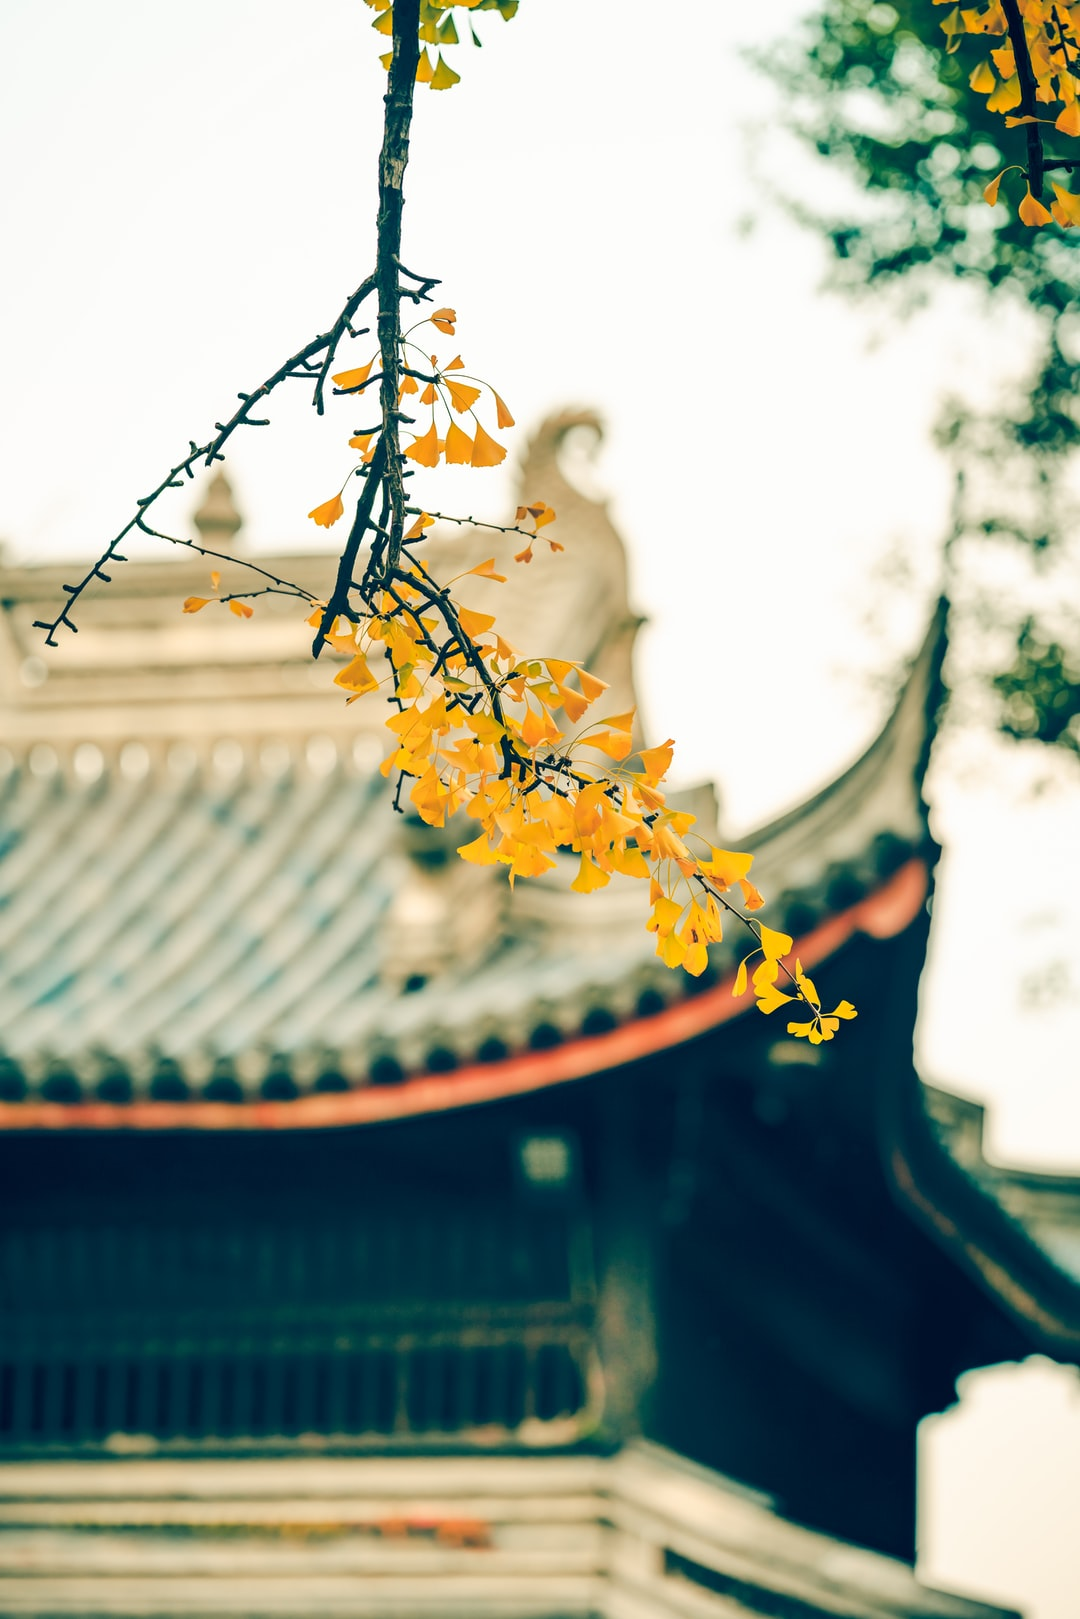 A record of 135GM telephoto in Huishan Ancient Town before the winter cold current